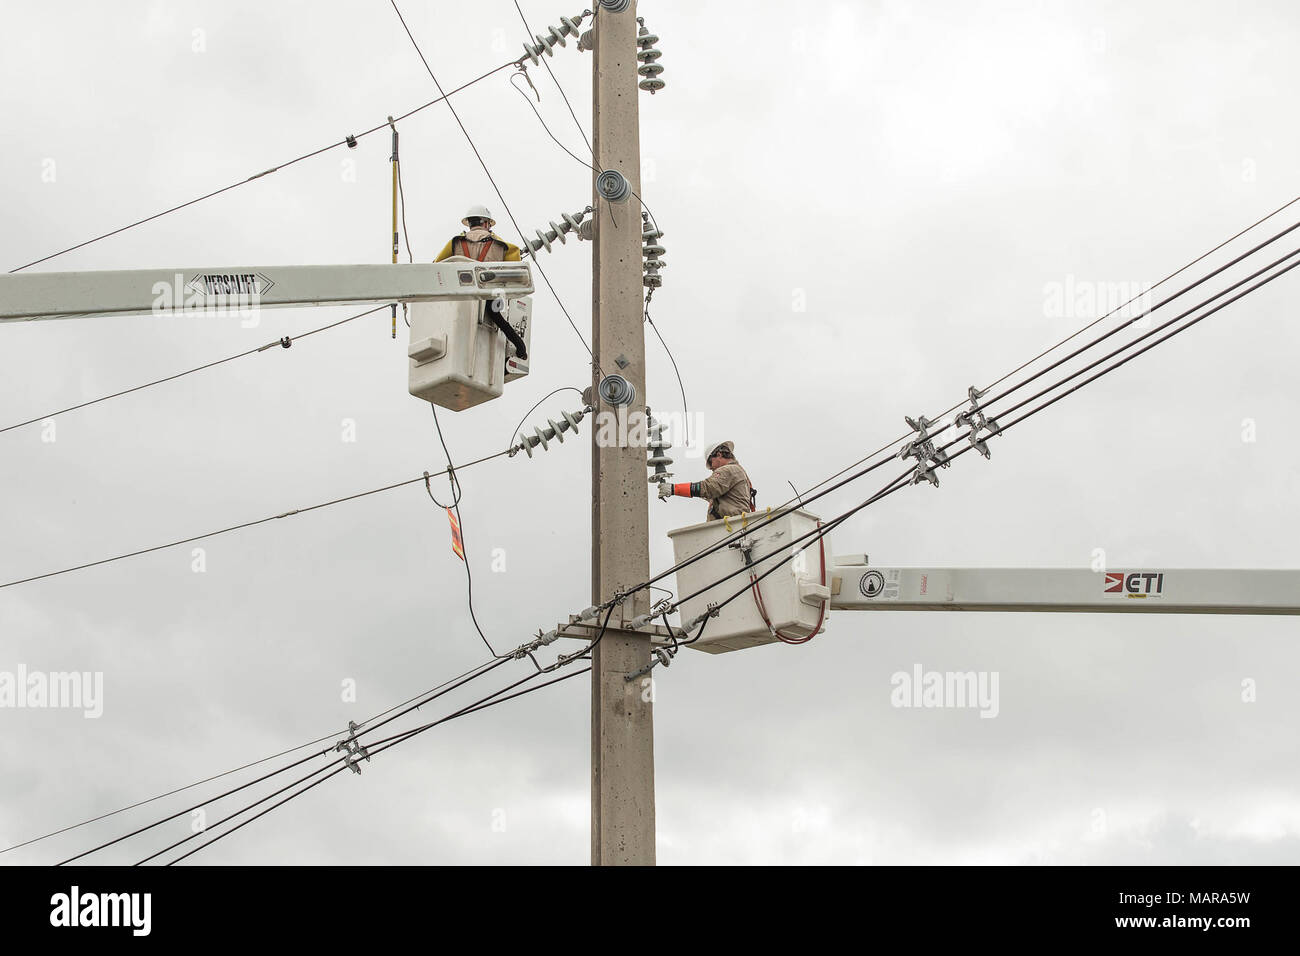 Mayaguez, Puerto Rico, Dec. 8, 2017--Contractors of U.S. Army Corps of Engineers (USACE) work to repair transmission lines in Mayaguez. Assigned by FEMA, USACE leads the federal effort to repair the electrical power network damaged by the hurricanes. FEMA/Eduardo Martinez - Stock Image